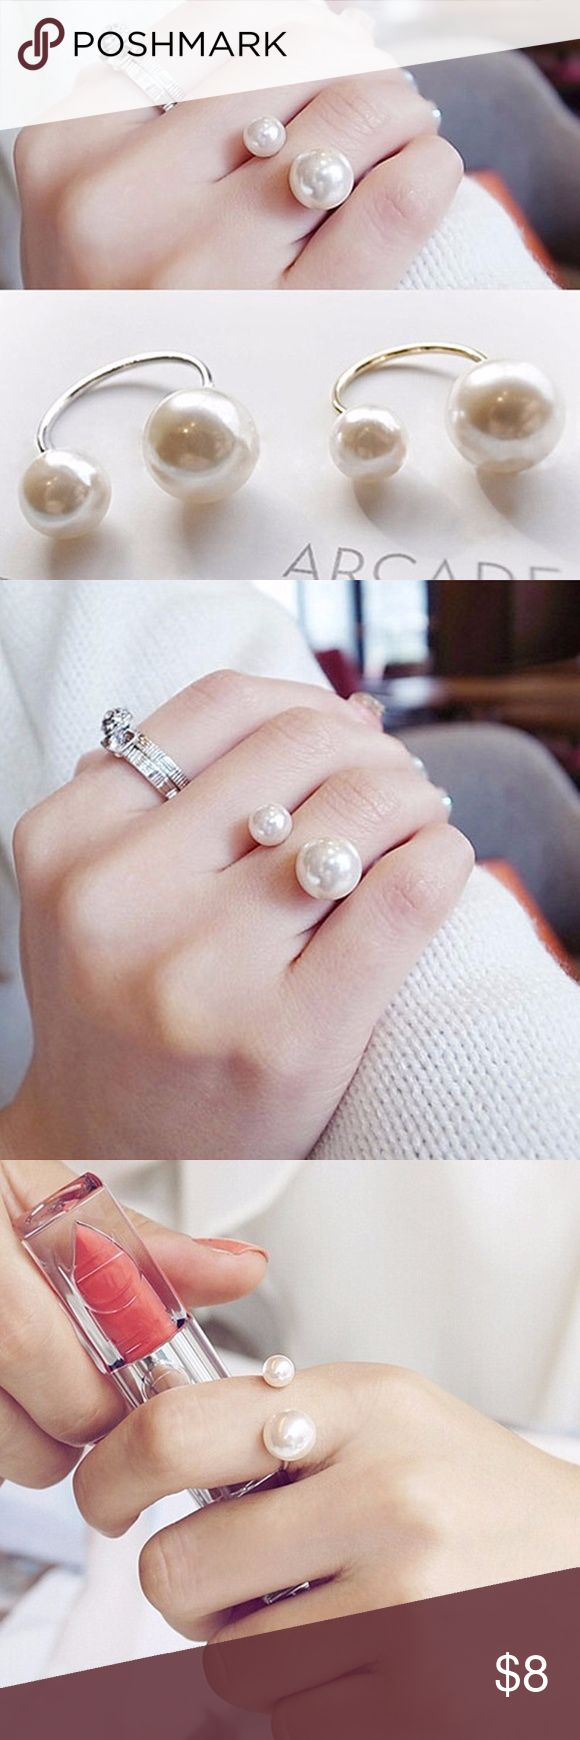 Modern Chic Adjustable Pearl Ring Fashion Jewelry Color : Silver, Gold   Material : Zinc Alloy, Simulated pearls   Size : adjustable LINQ LA Jewelry Rings